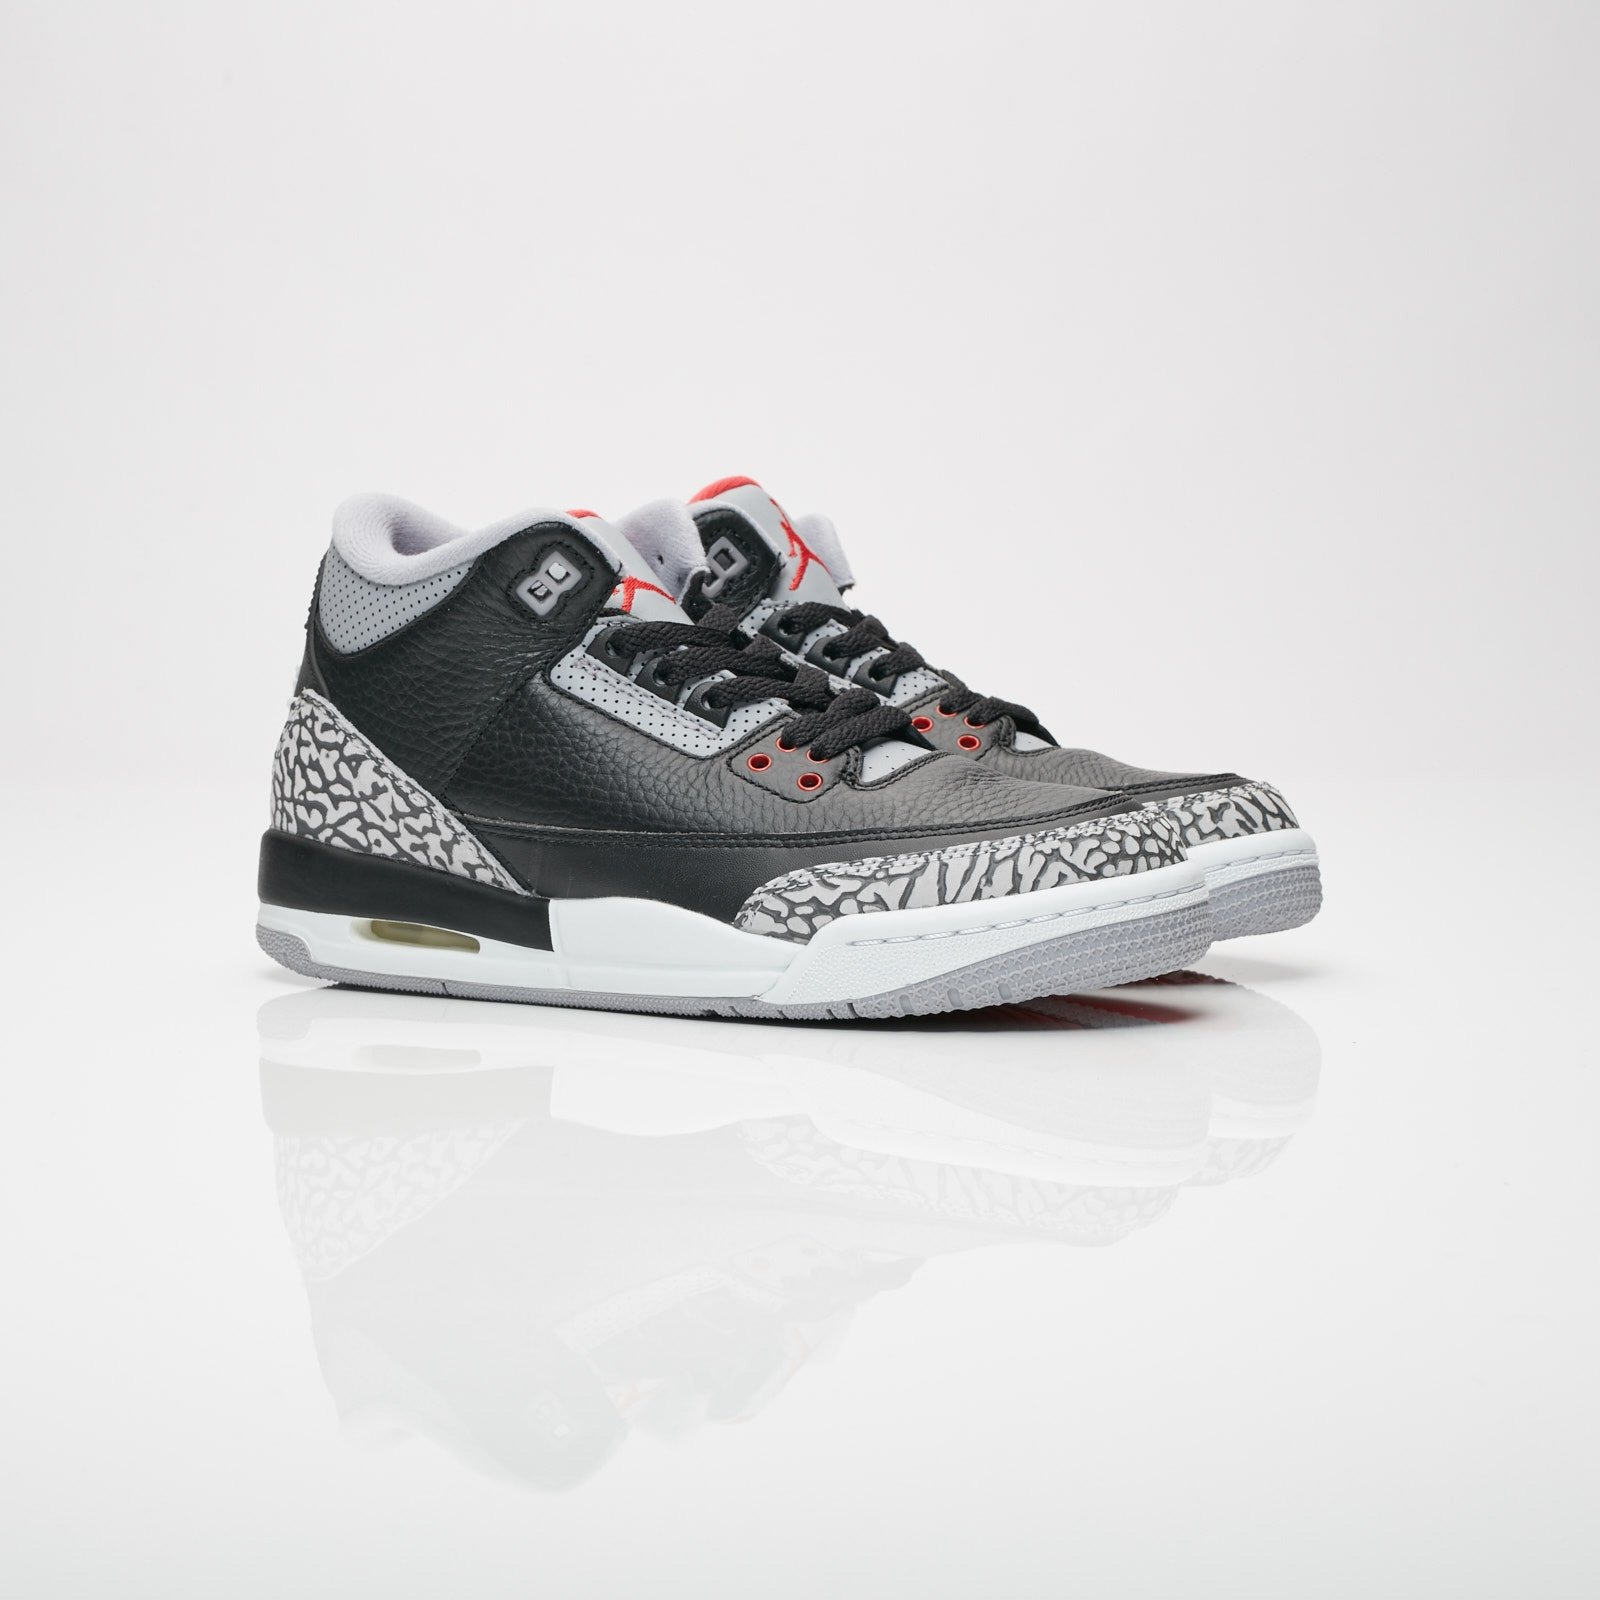 cheap for discount 94583 05cfa Jordan Brand Air Jordan 3 Retro OG (GS)